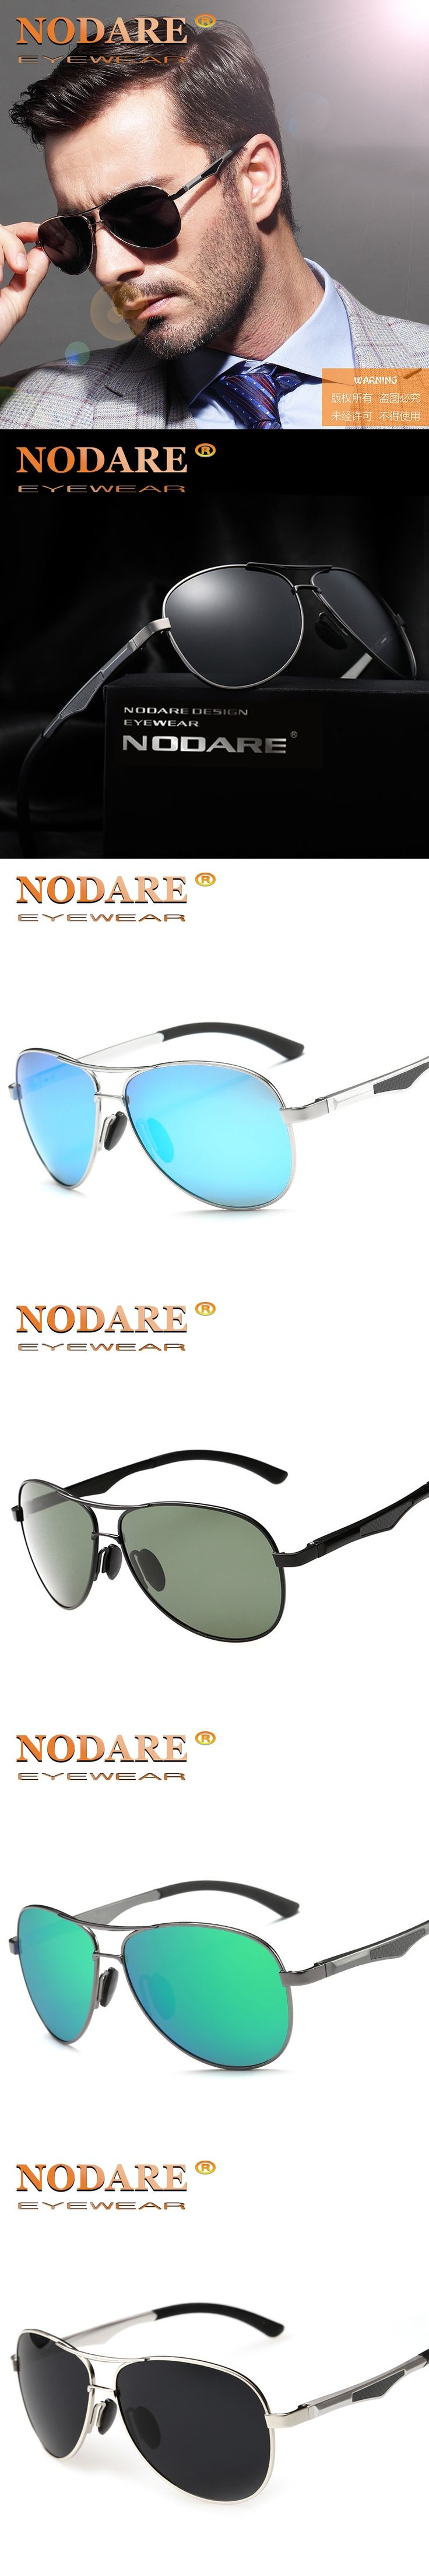 NODARE Polarized Sunglasses for Men Aviator Sunglasses Men for Driving Luxury Brand Coating mirror Sun Glasses male female Women